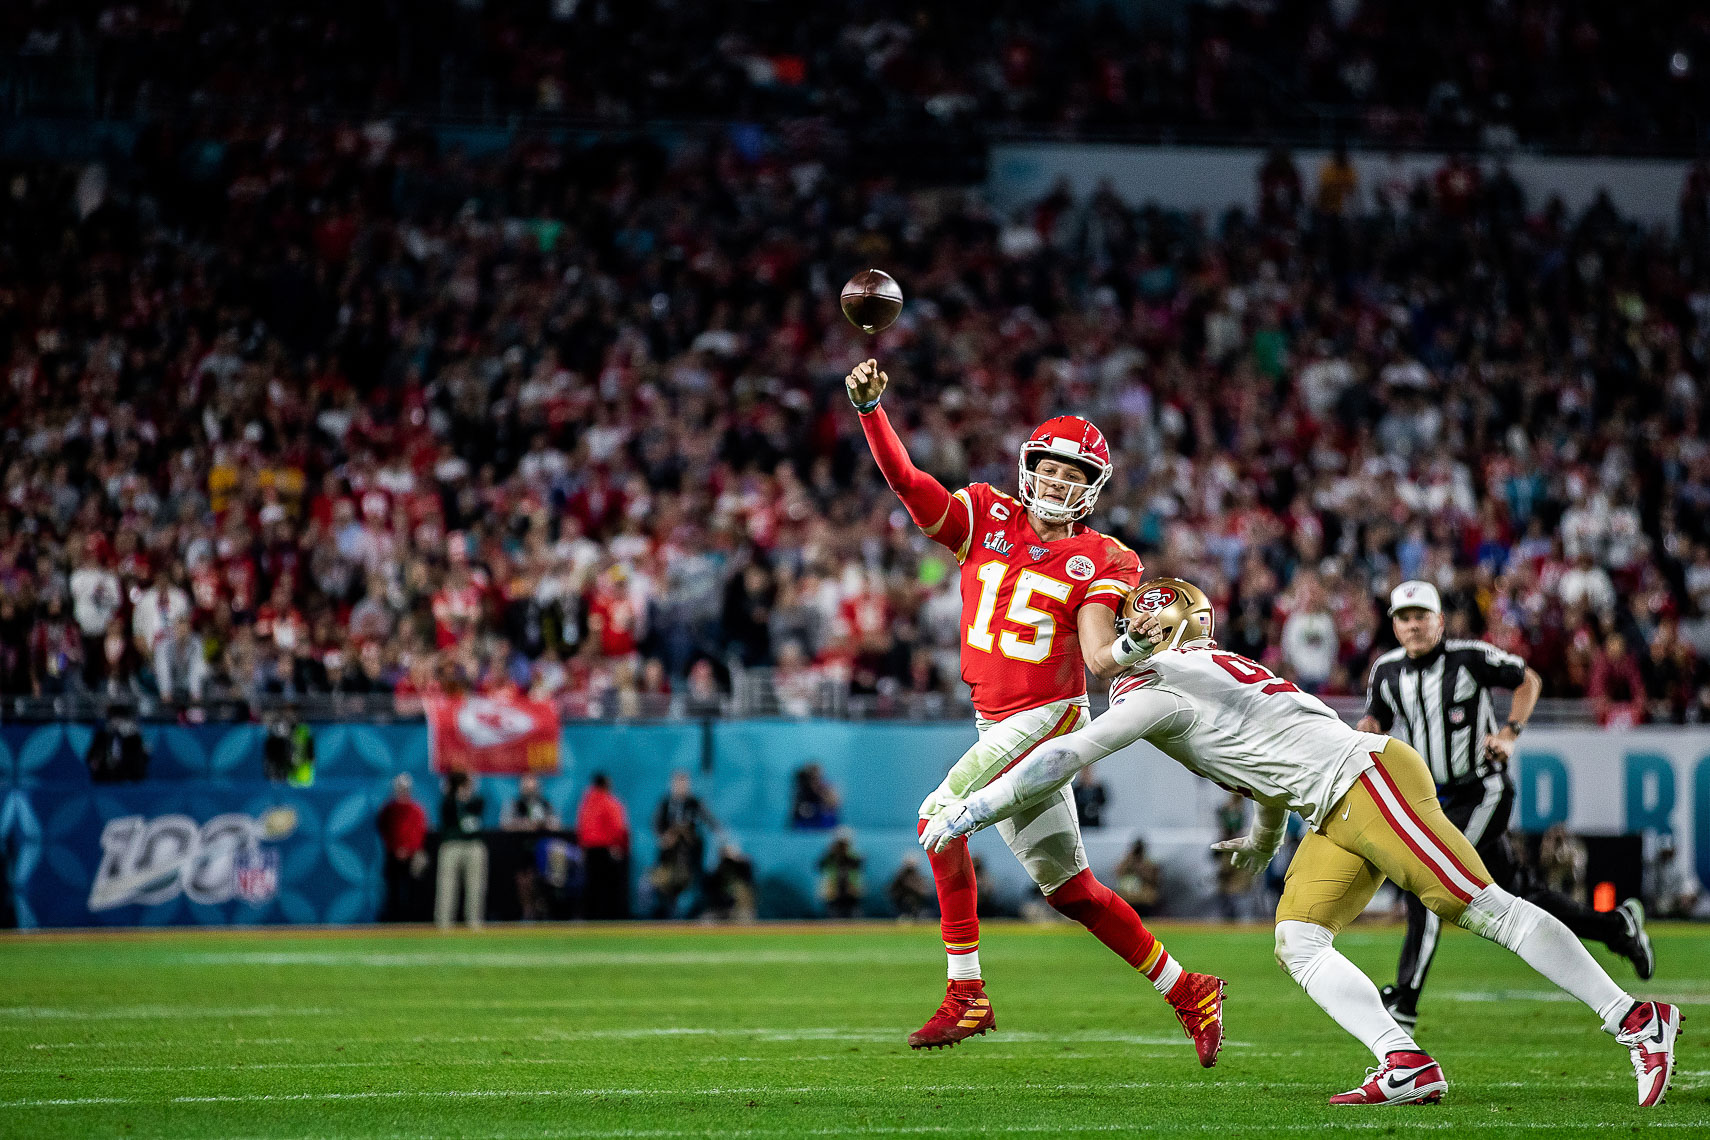 Super Bowl MVP Patrick Mahomes Sports Athlete Lifestyle NFL Super Bowl LIV Photography